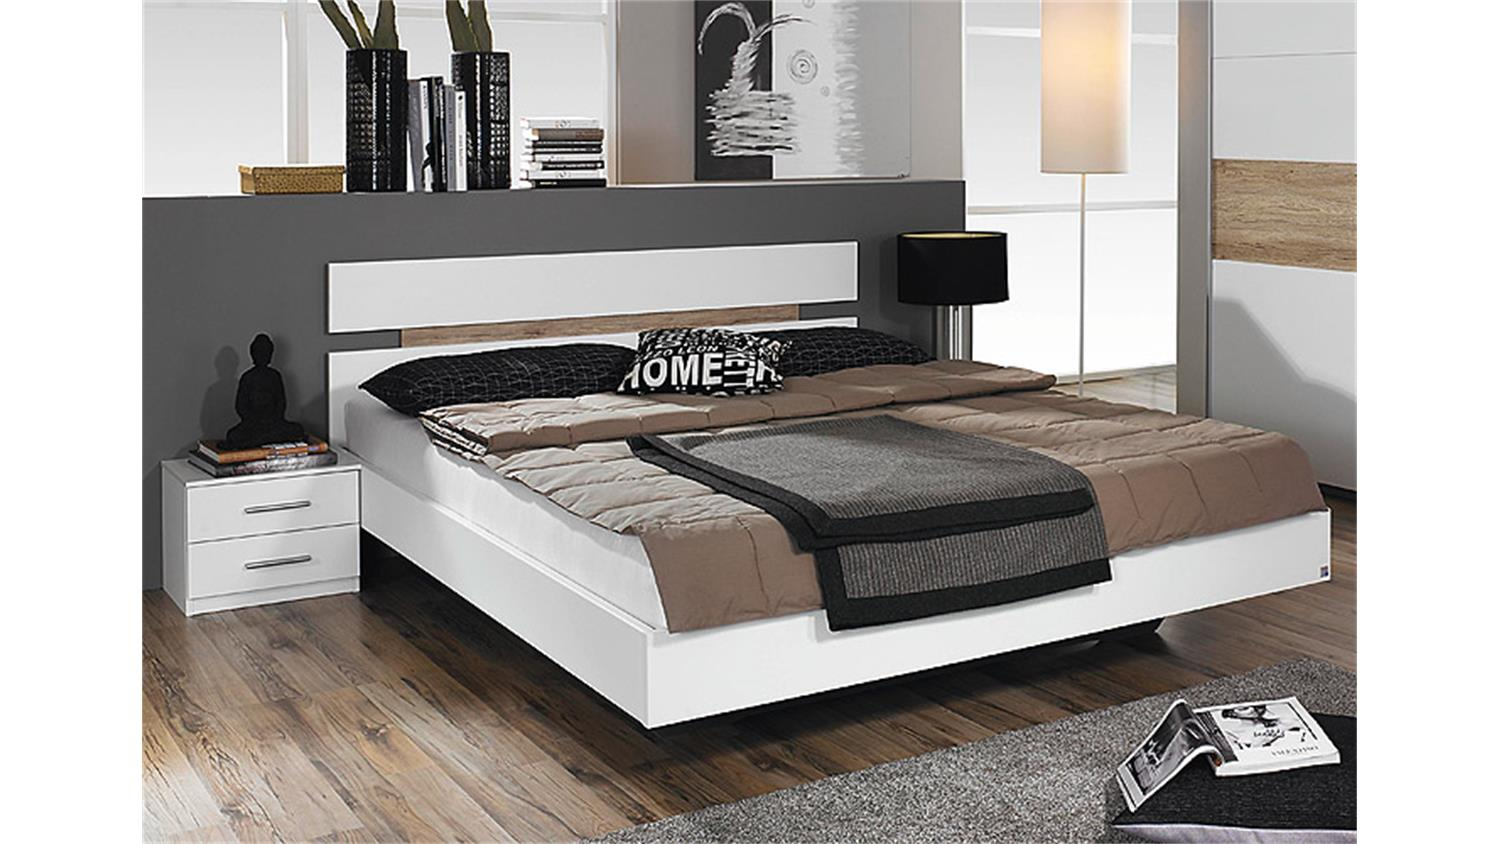 bettanlage 2 almada wei eiche sanremo hell 180x200 cm. Black Bedroom Furniture Sets. Home Design Ideas